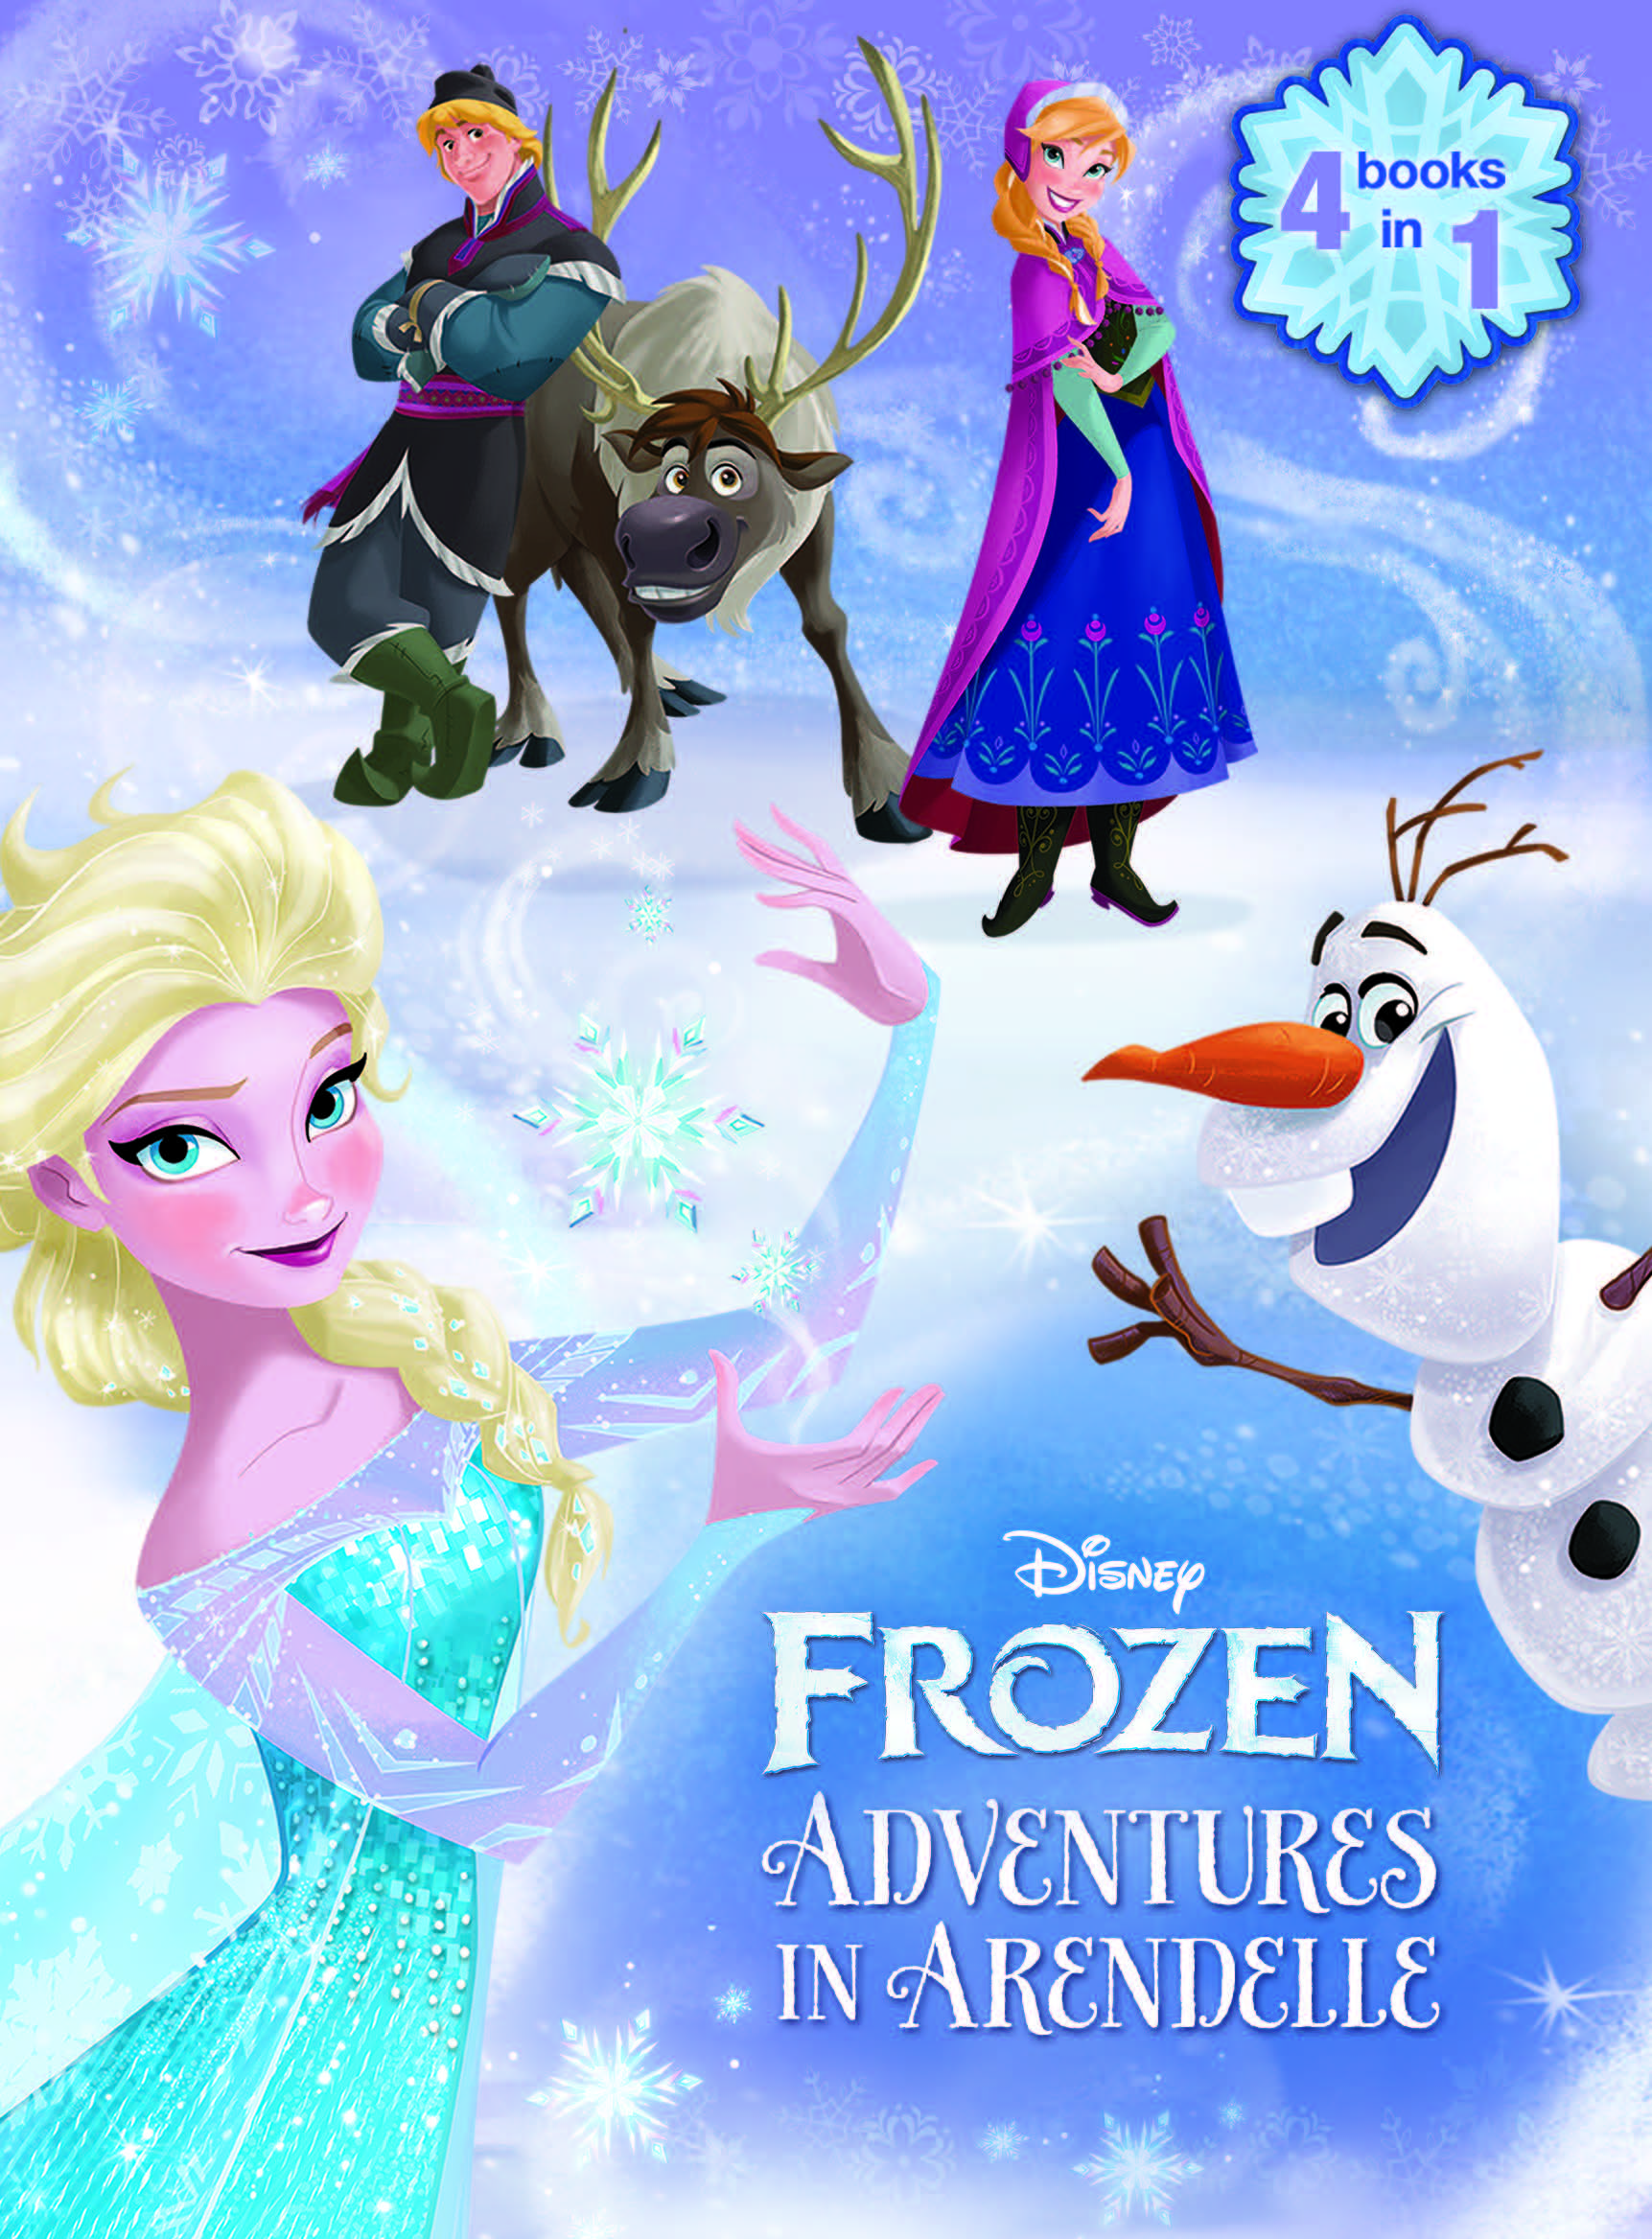 Frozen Book And Magnetic Play Set Disney Publishing border=